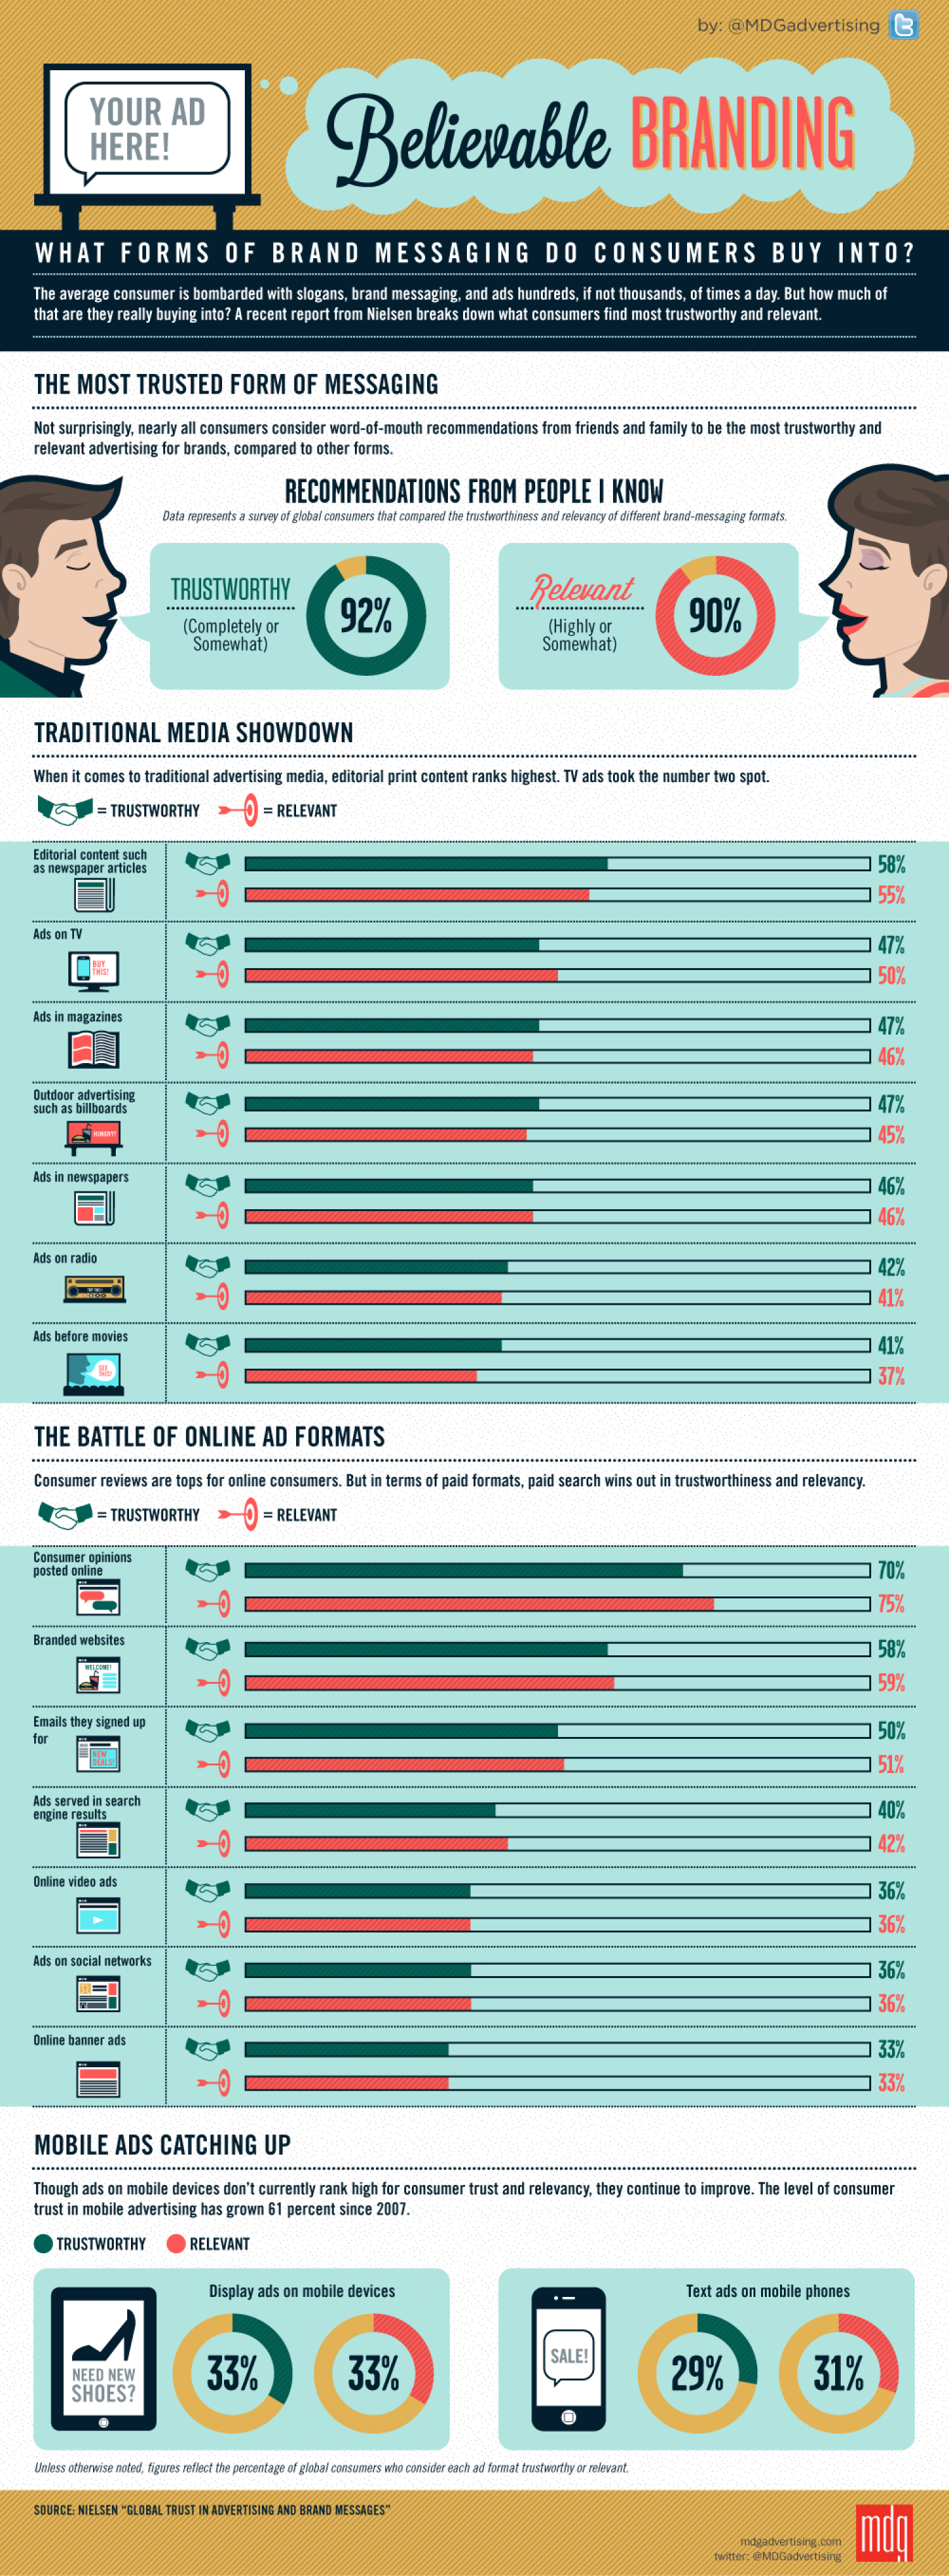 Believable Branding: What Form Of Brand Messaging Do Consumers Buy Into? Infographic